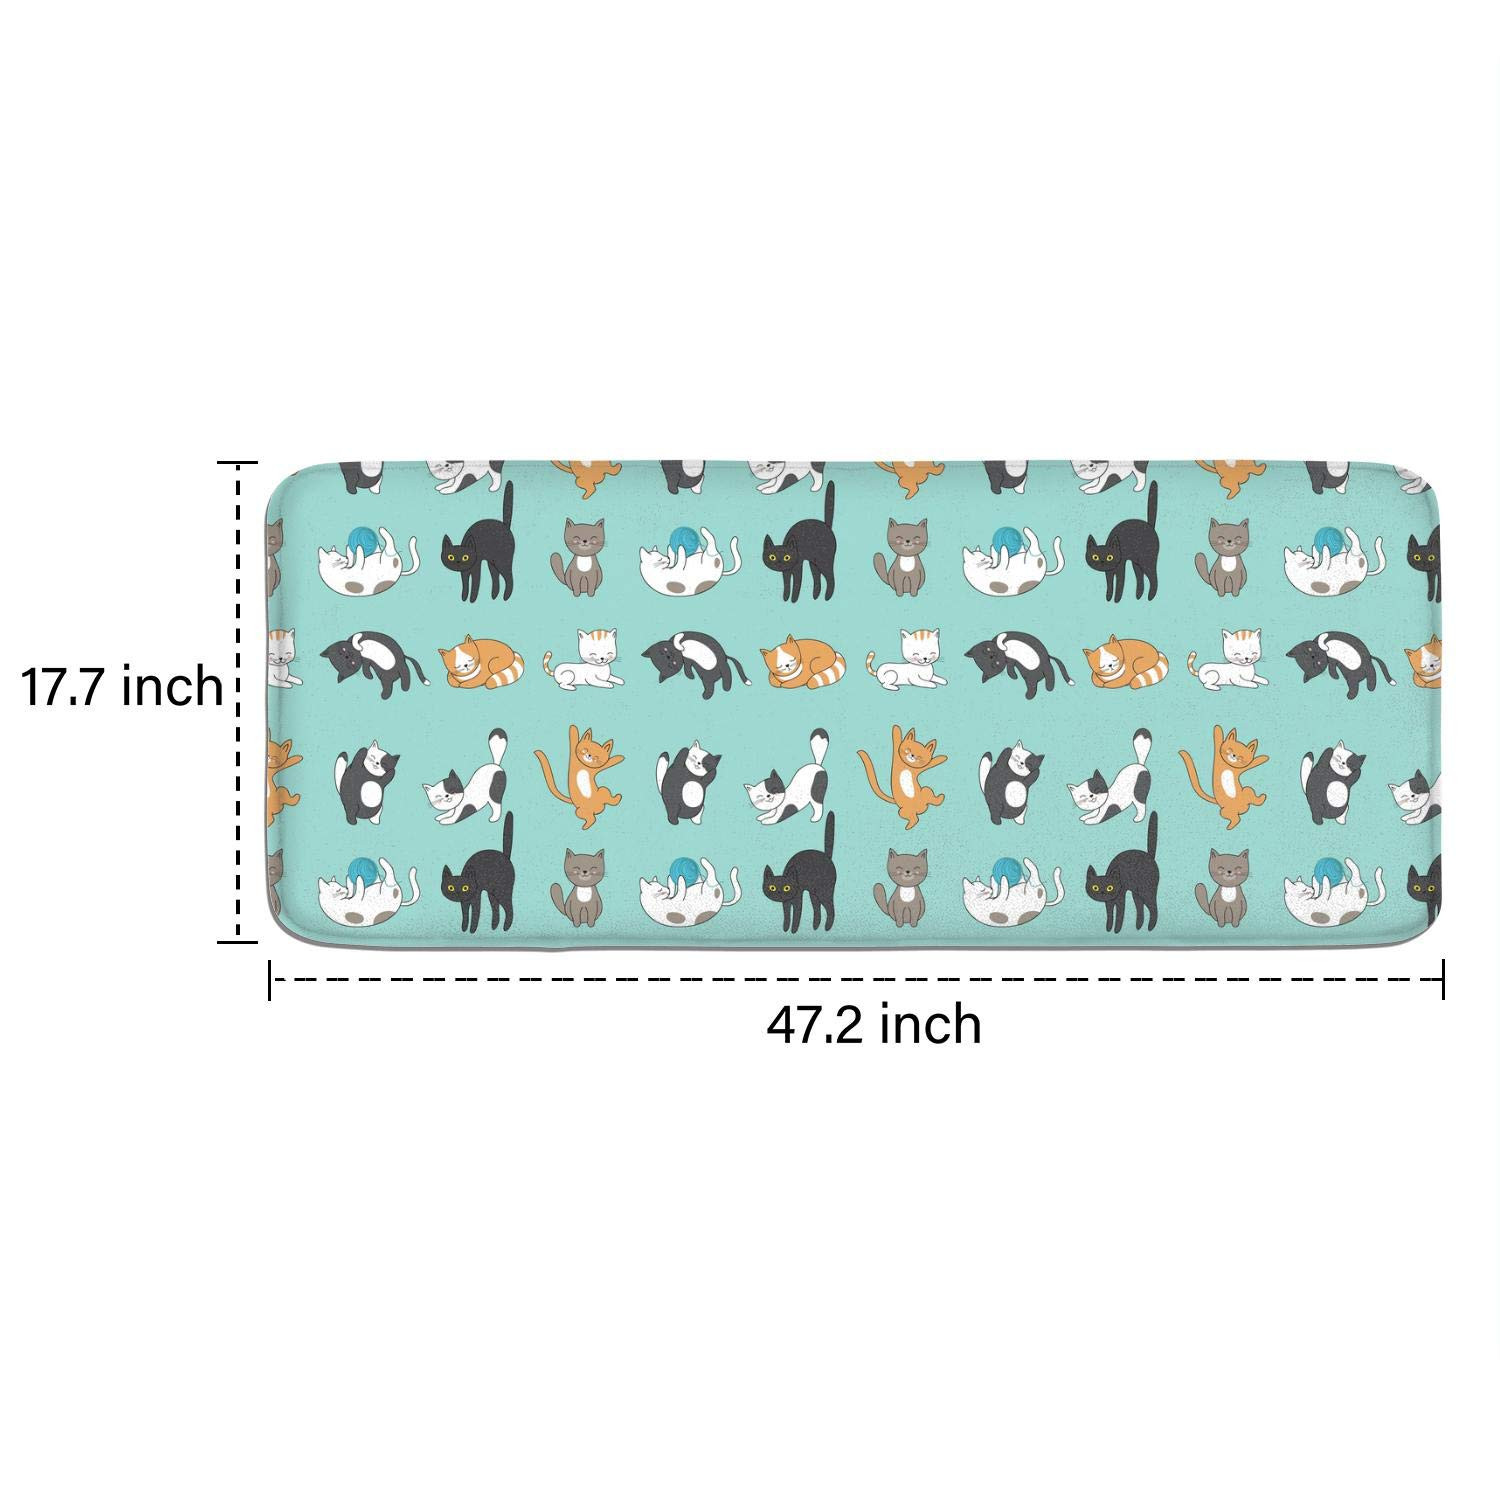 JWOJJUAW 17.7x47.2 A Group of Cats Anti Fatigue PVC Large Standing Rug Floor Foam Non-Slip Kitchen Mats Cushioned Durable Decorative Doormat